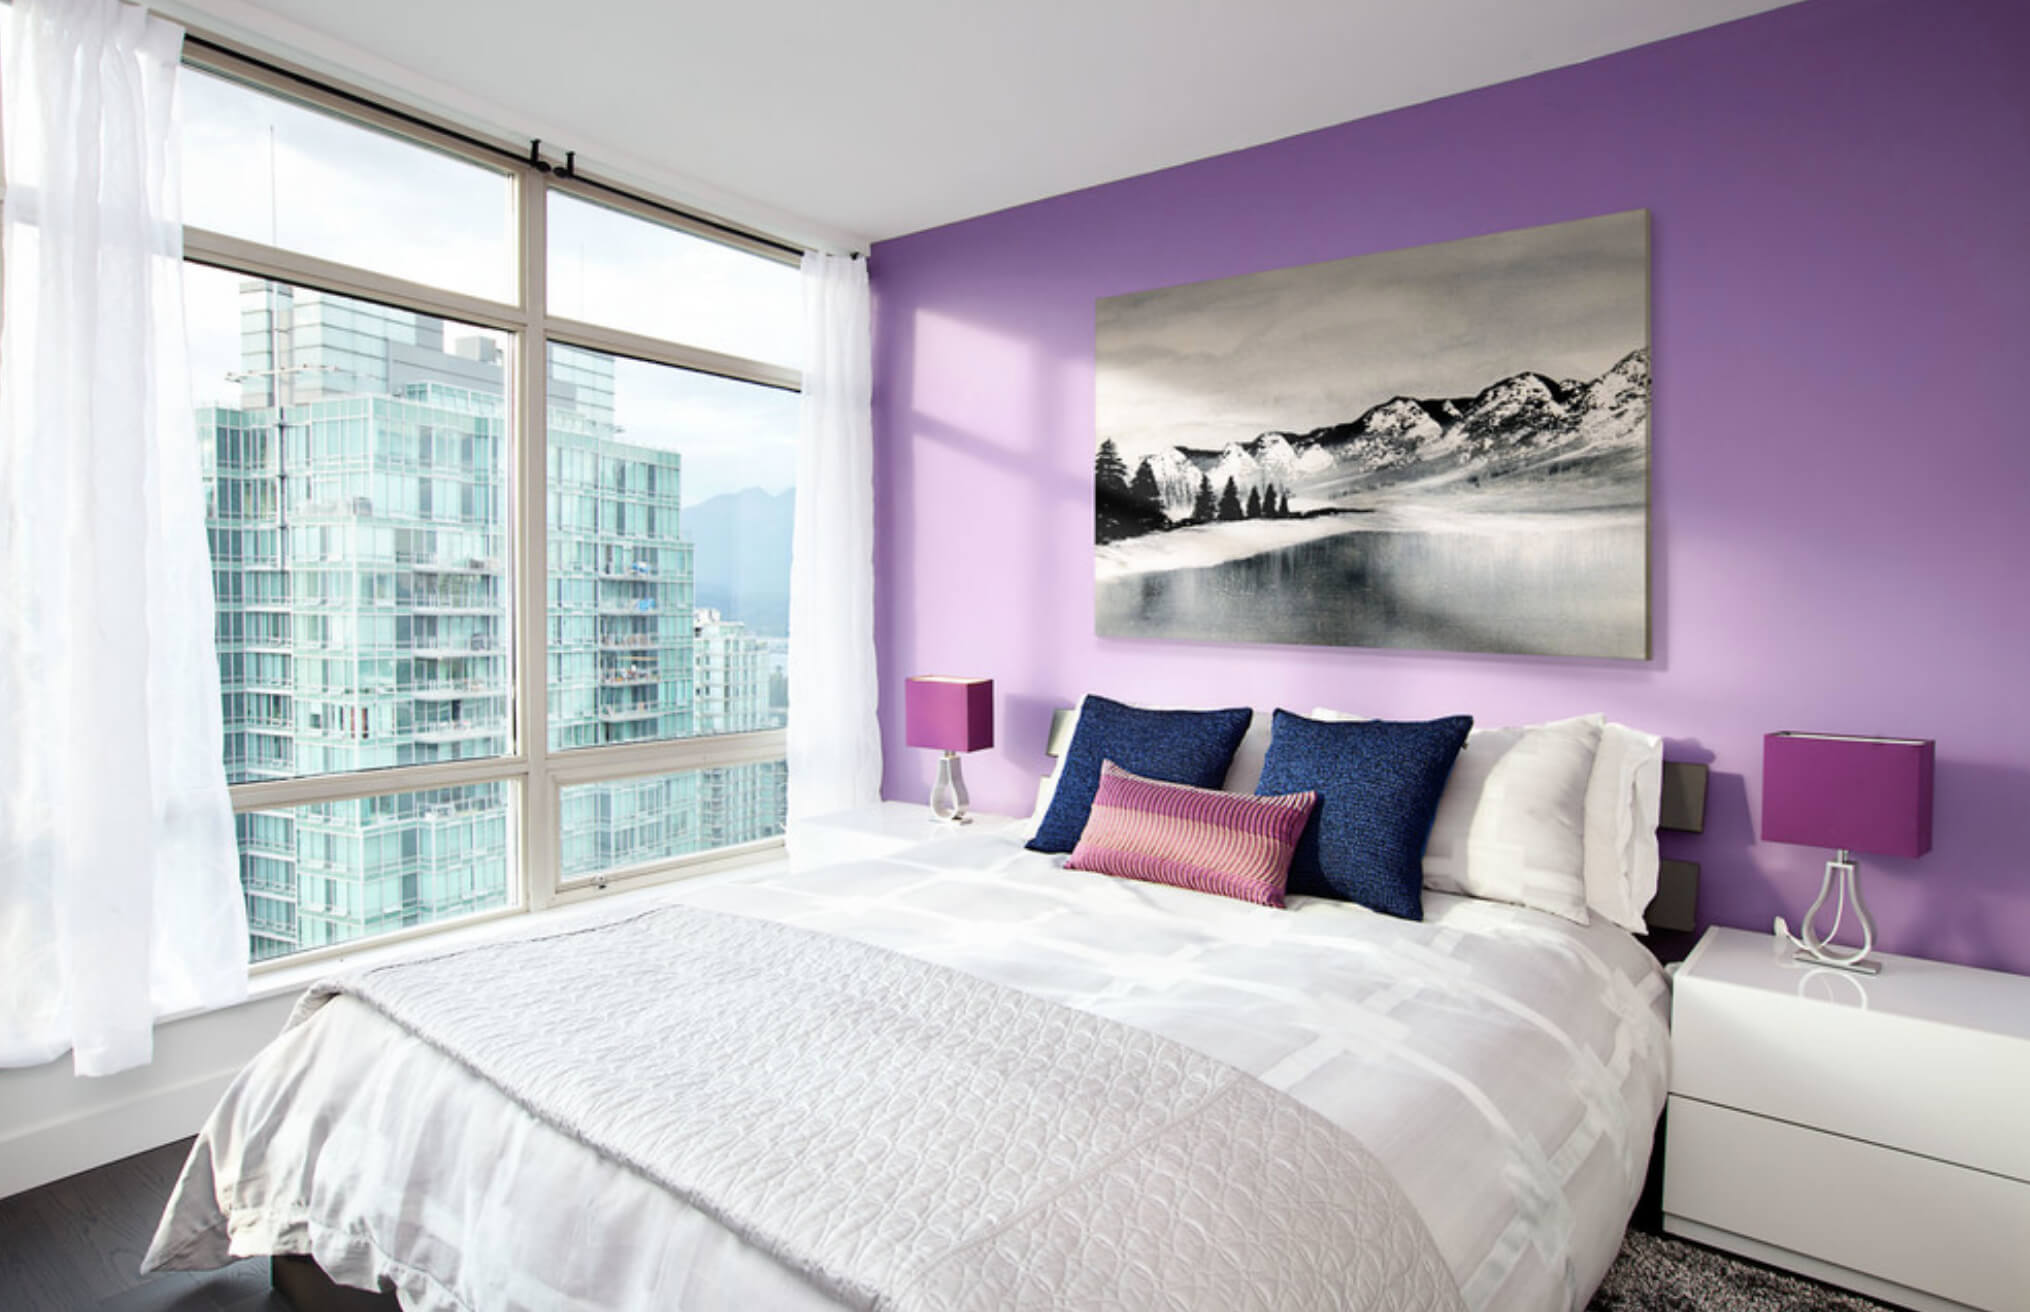 7 Easy Ways To Decorate With Lilac